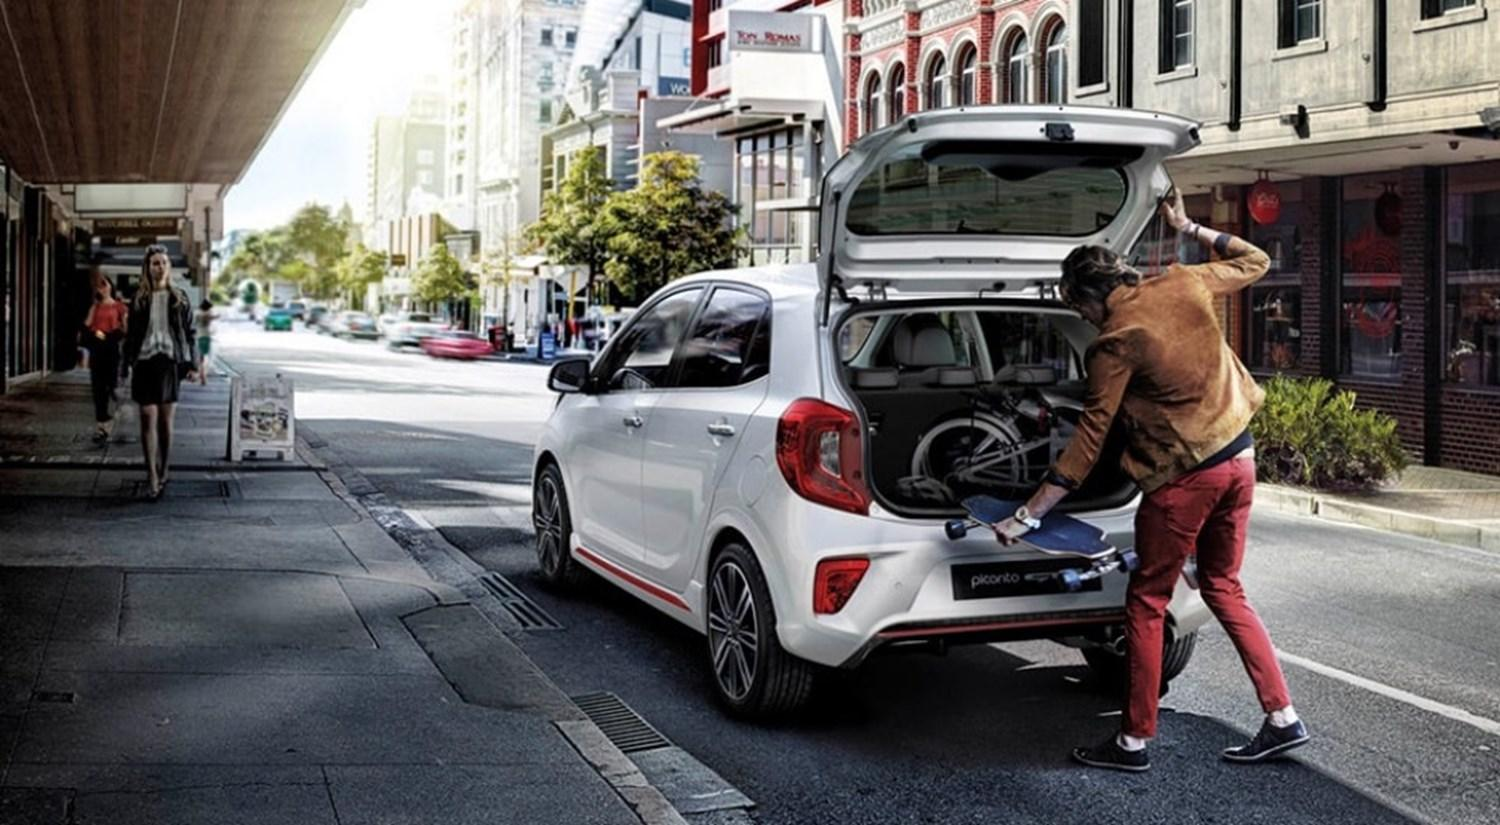 White Kia Picanto parked on street with boot open